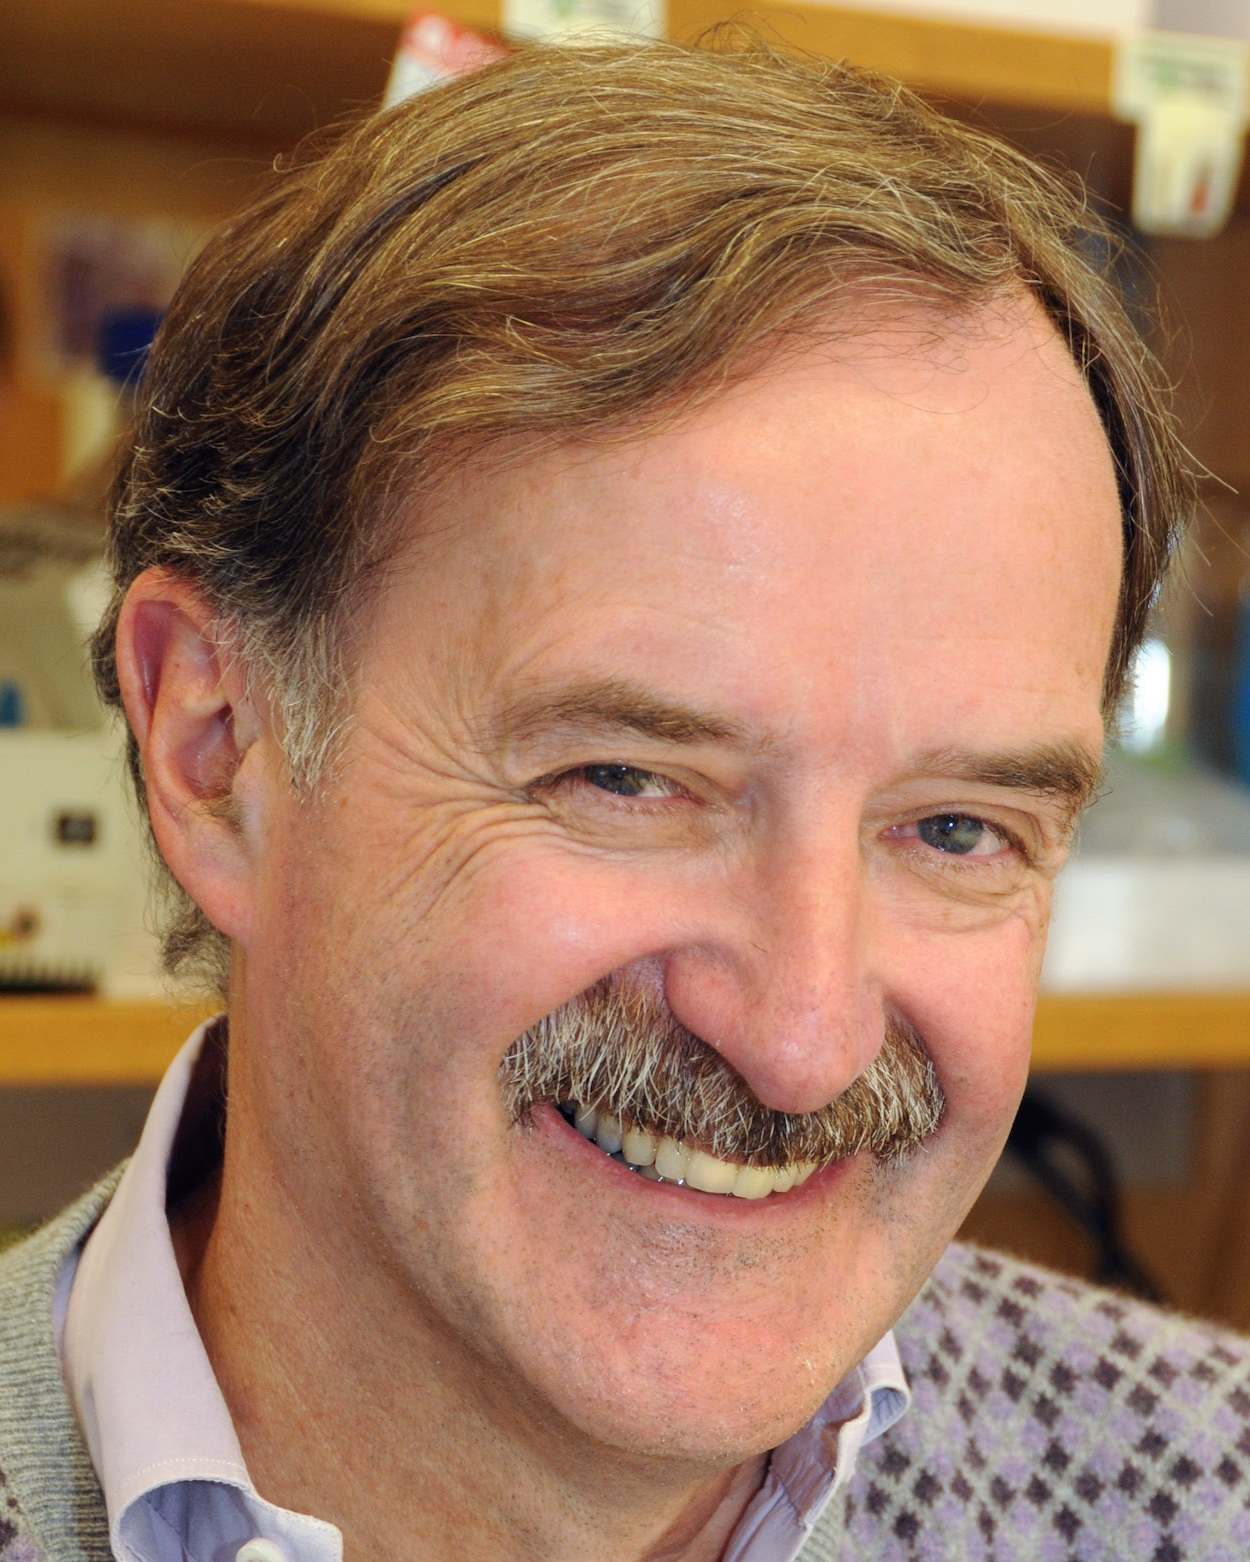 Garret A. FitzGerald, MD, FRSDirector - Penn Institute for Translational Medicine and Therapeutics